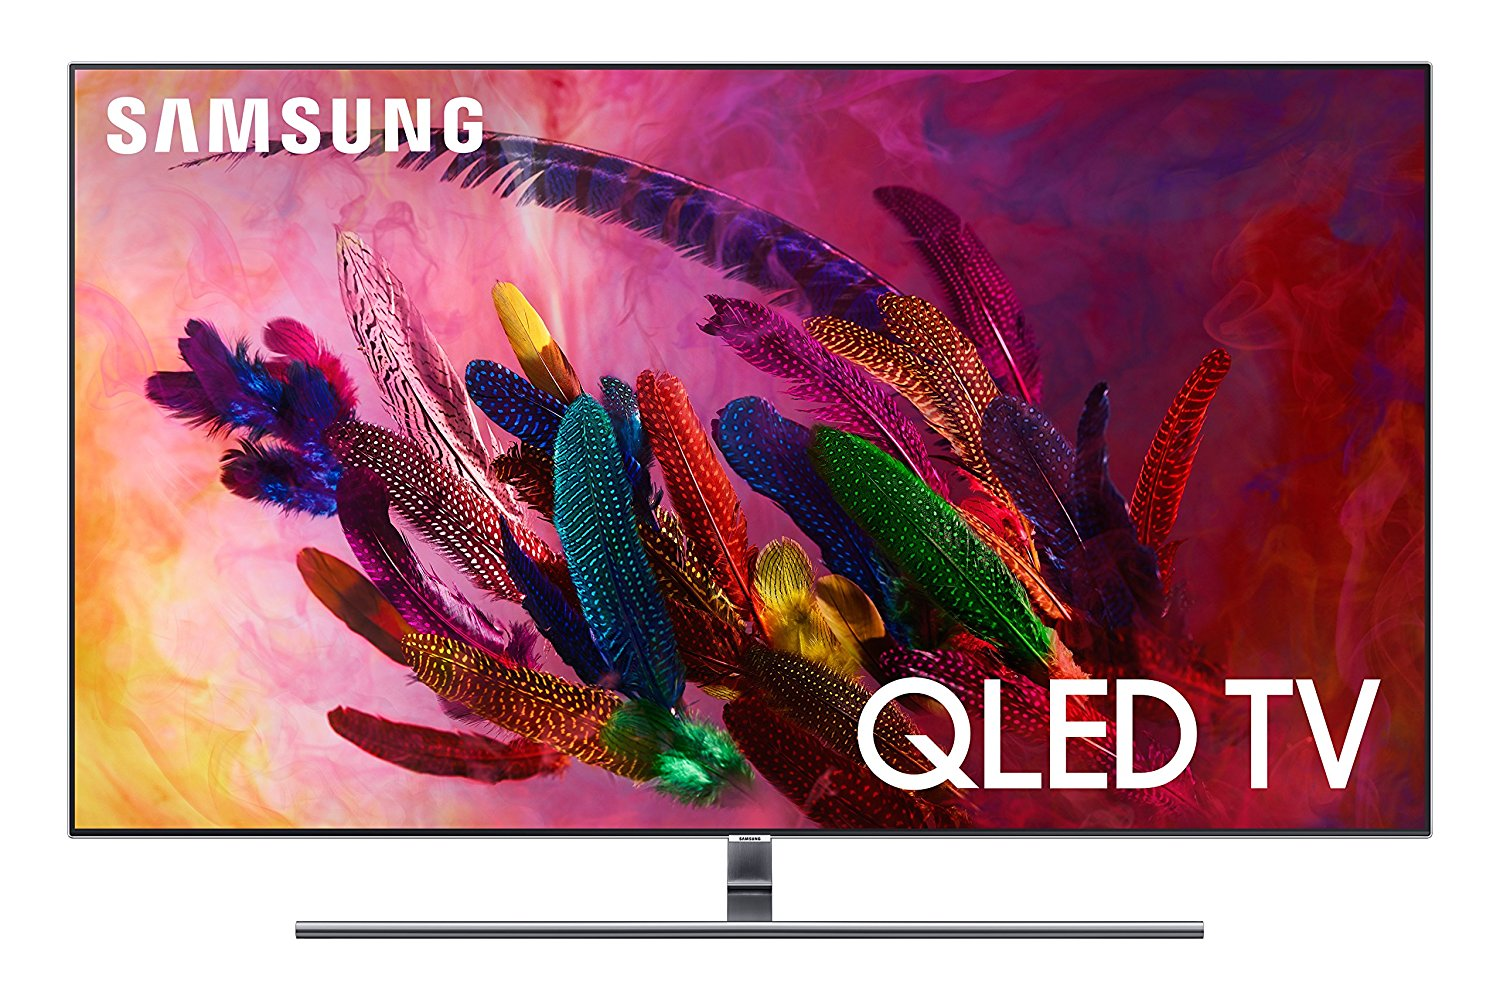 Samsung QN75Q7FN 75-Inch 4K Ultra HD Smart QLED TV